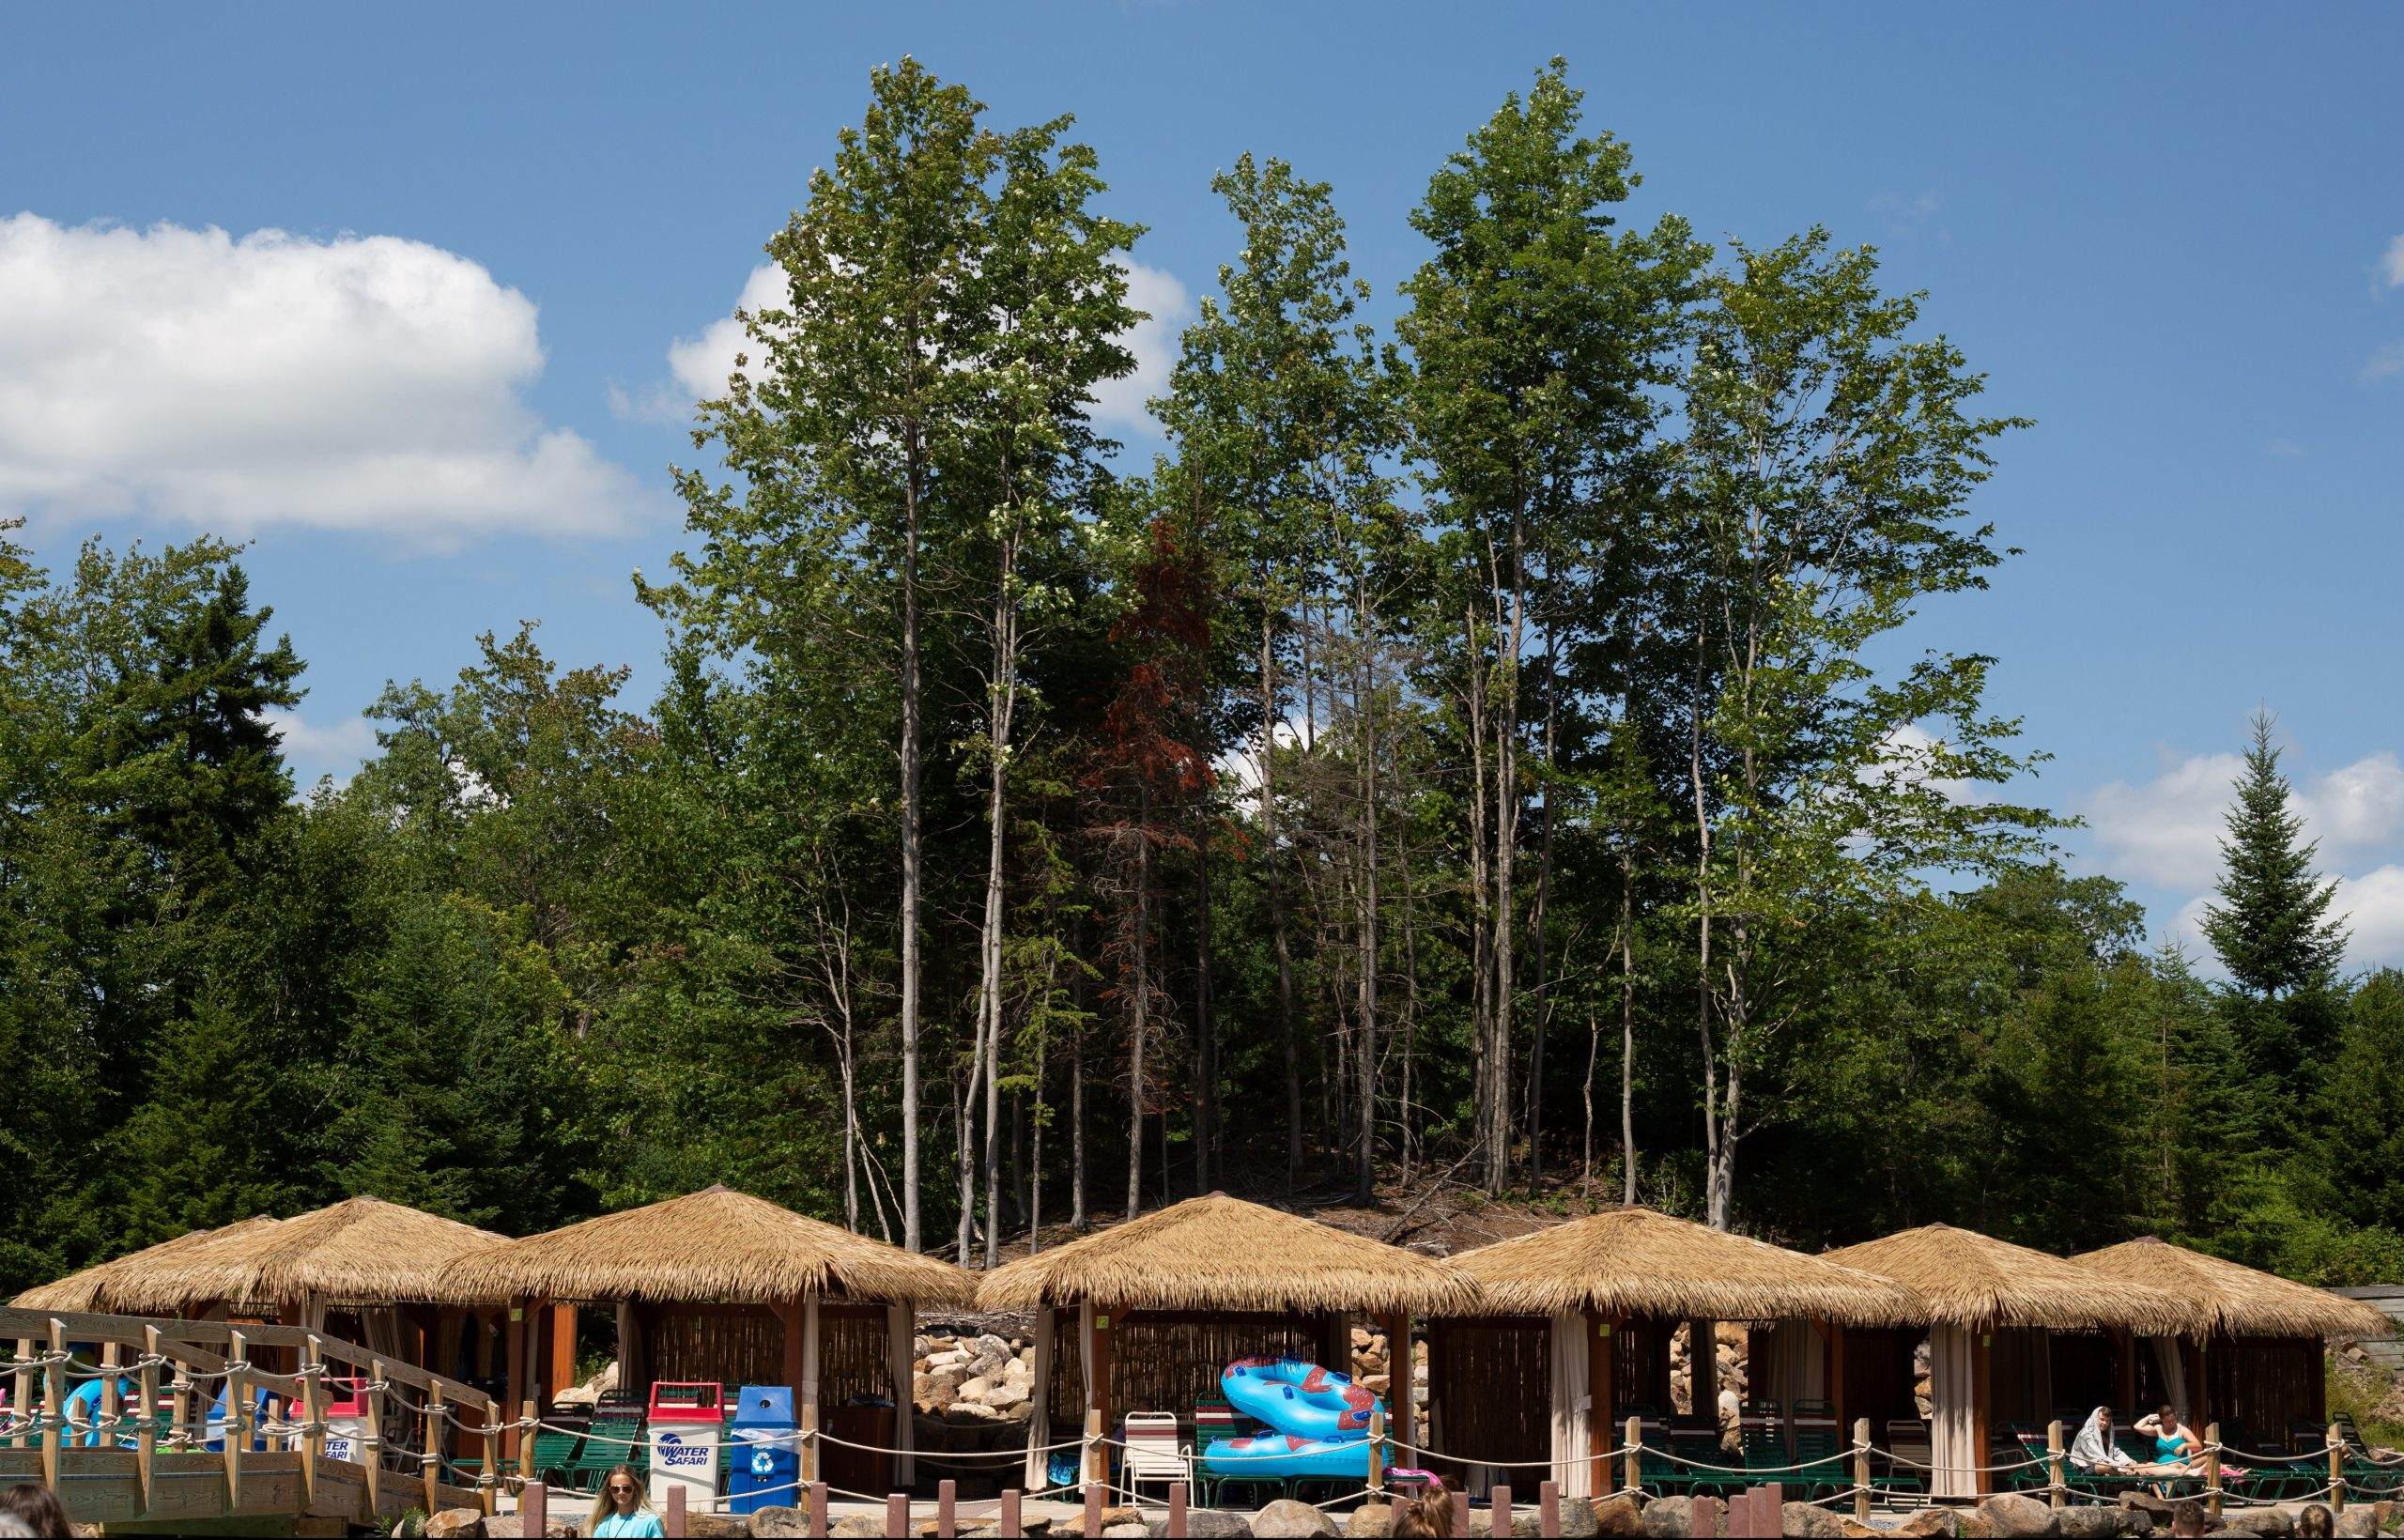 Image of the cabanas with tall trees in the background.